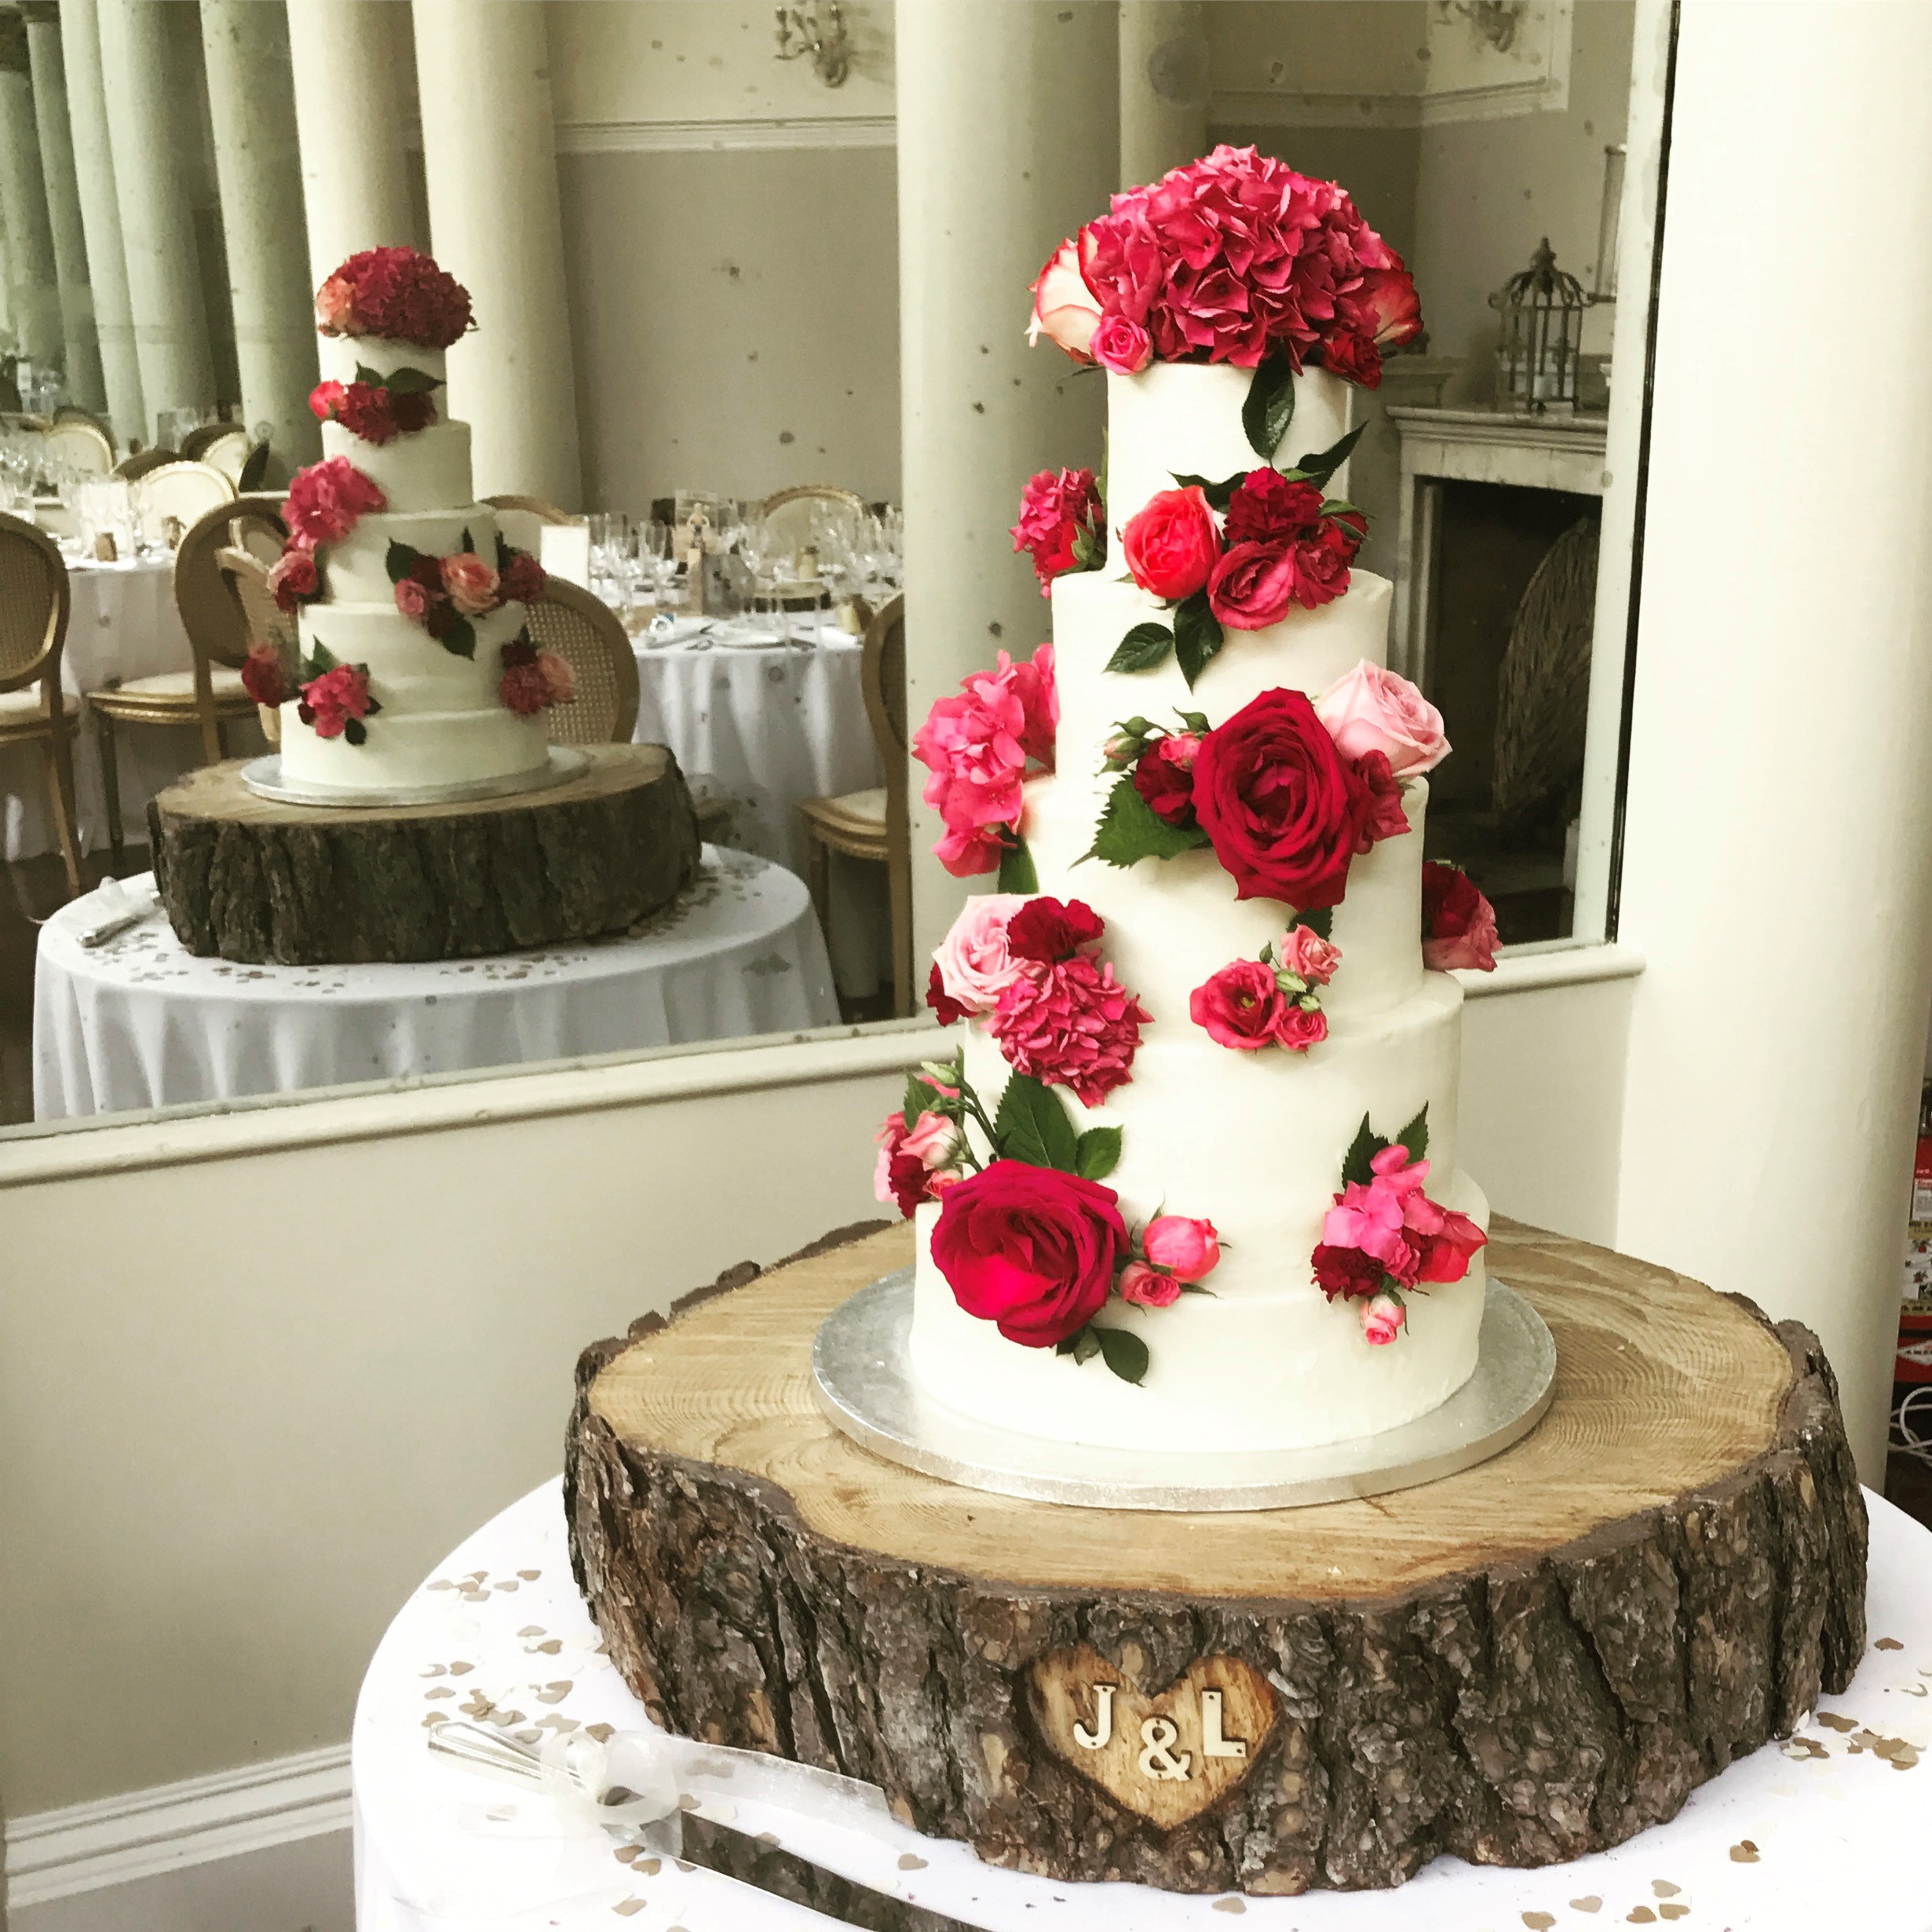 Ruth's sister's wedding cake